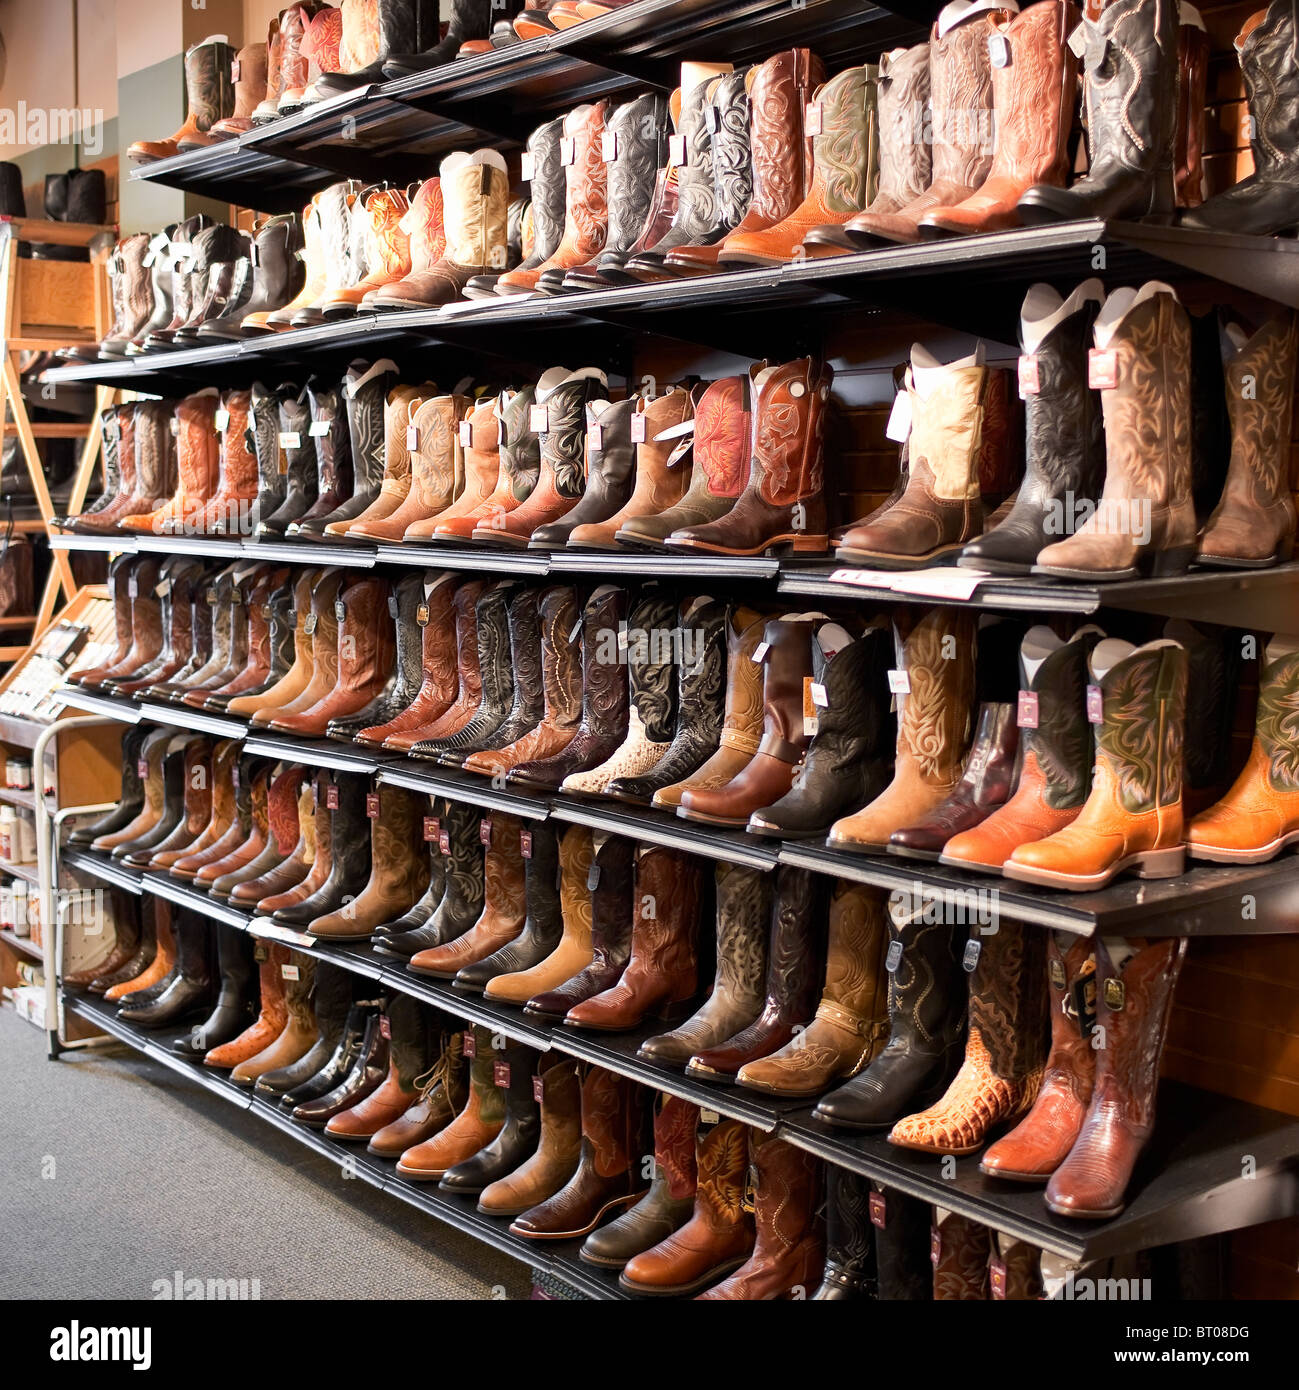 283e833e44c Rows of cowboy boots, Alberta, Canada Stock Photo: 31968764 - Alamy